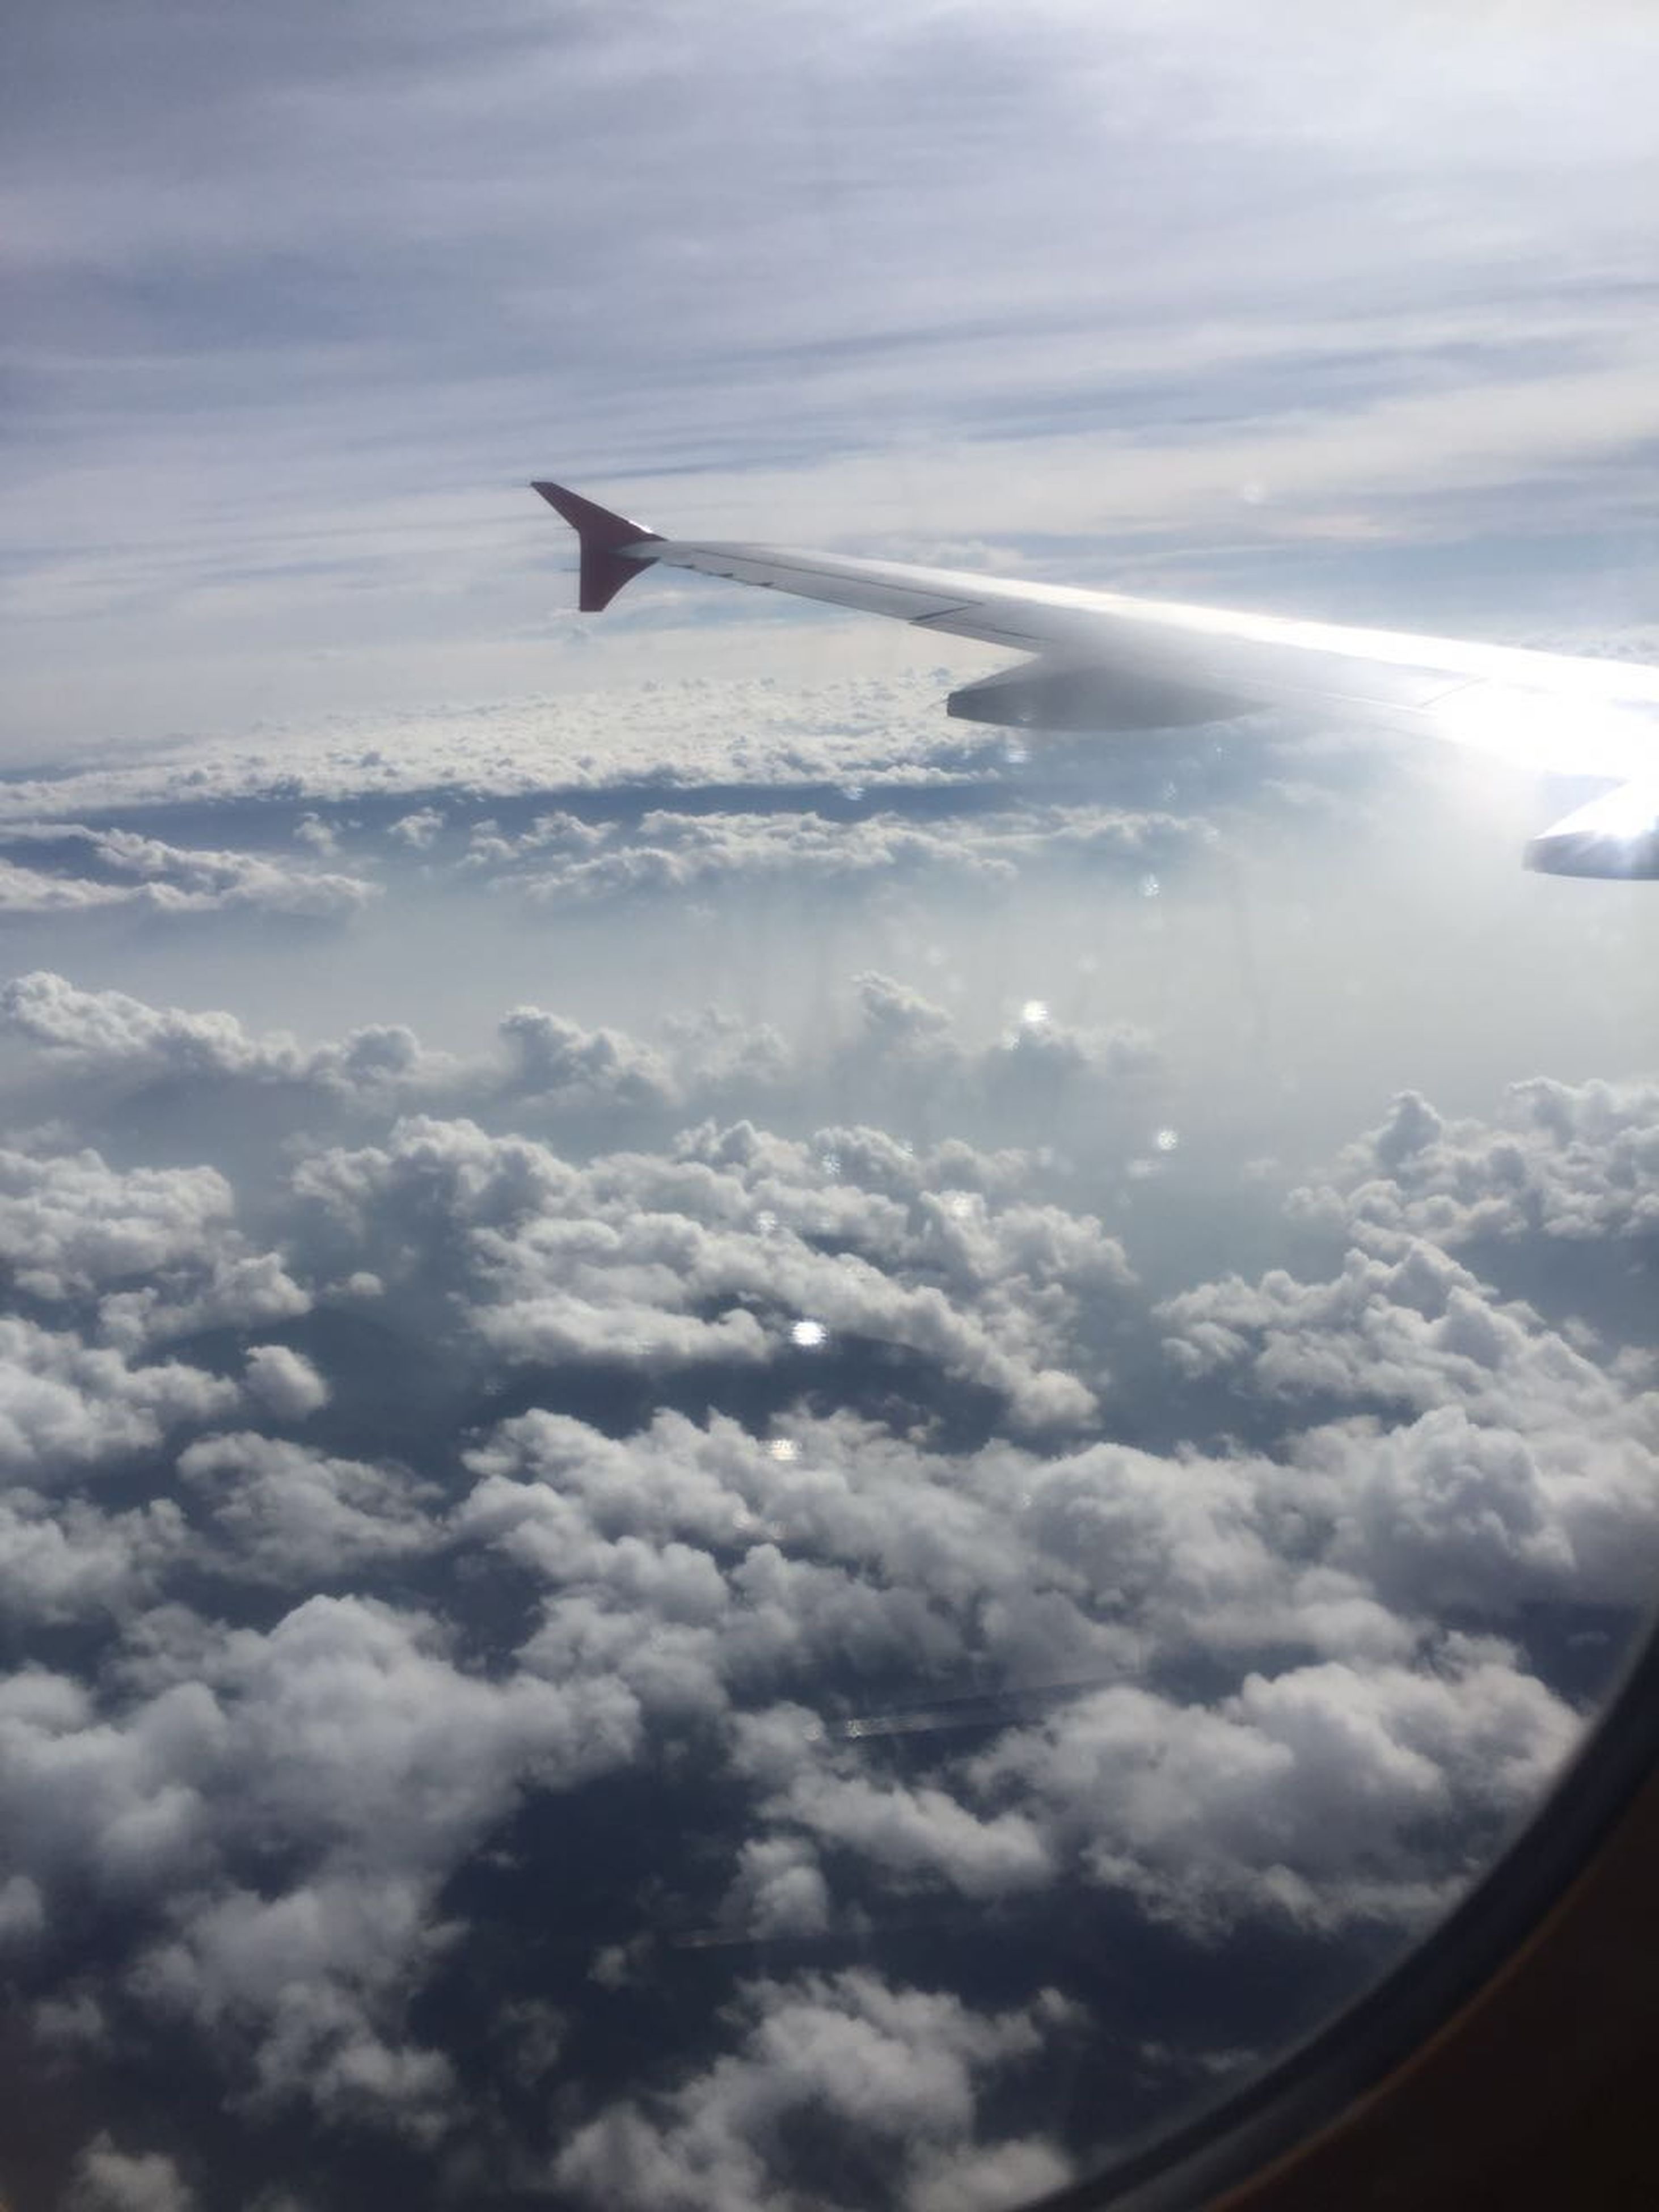 airplane, flying, air vehicle, transportation, aircraft wing, mode of transport, aerial view, part of, sky, mid-air, cropped, cloud - sky, travel, scenics, public transportation, cloudscape, journey, on the move, beauty in nature, landscape